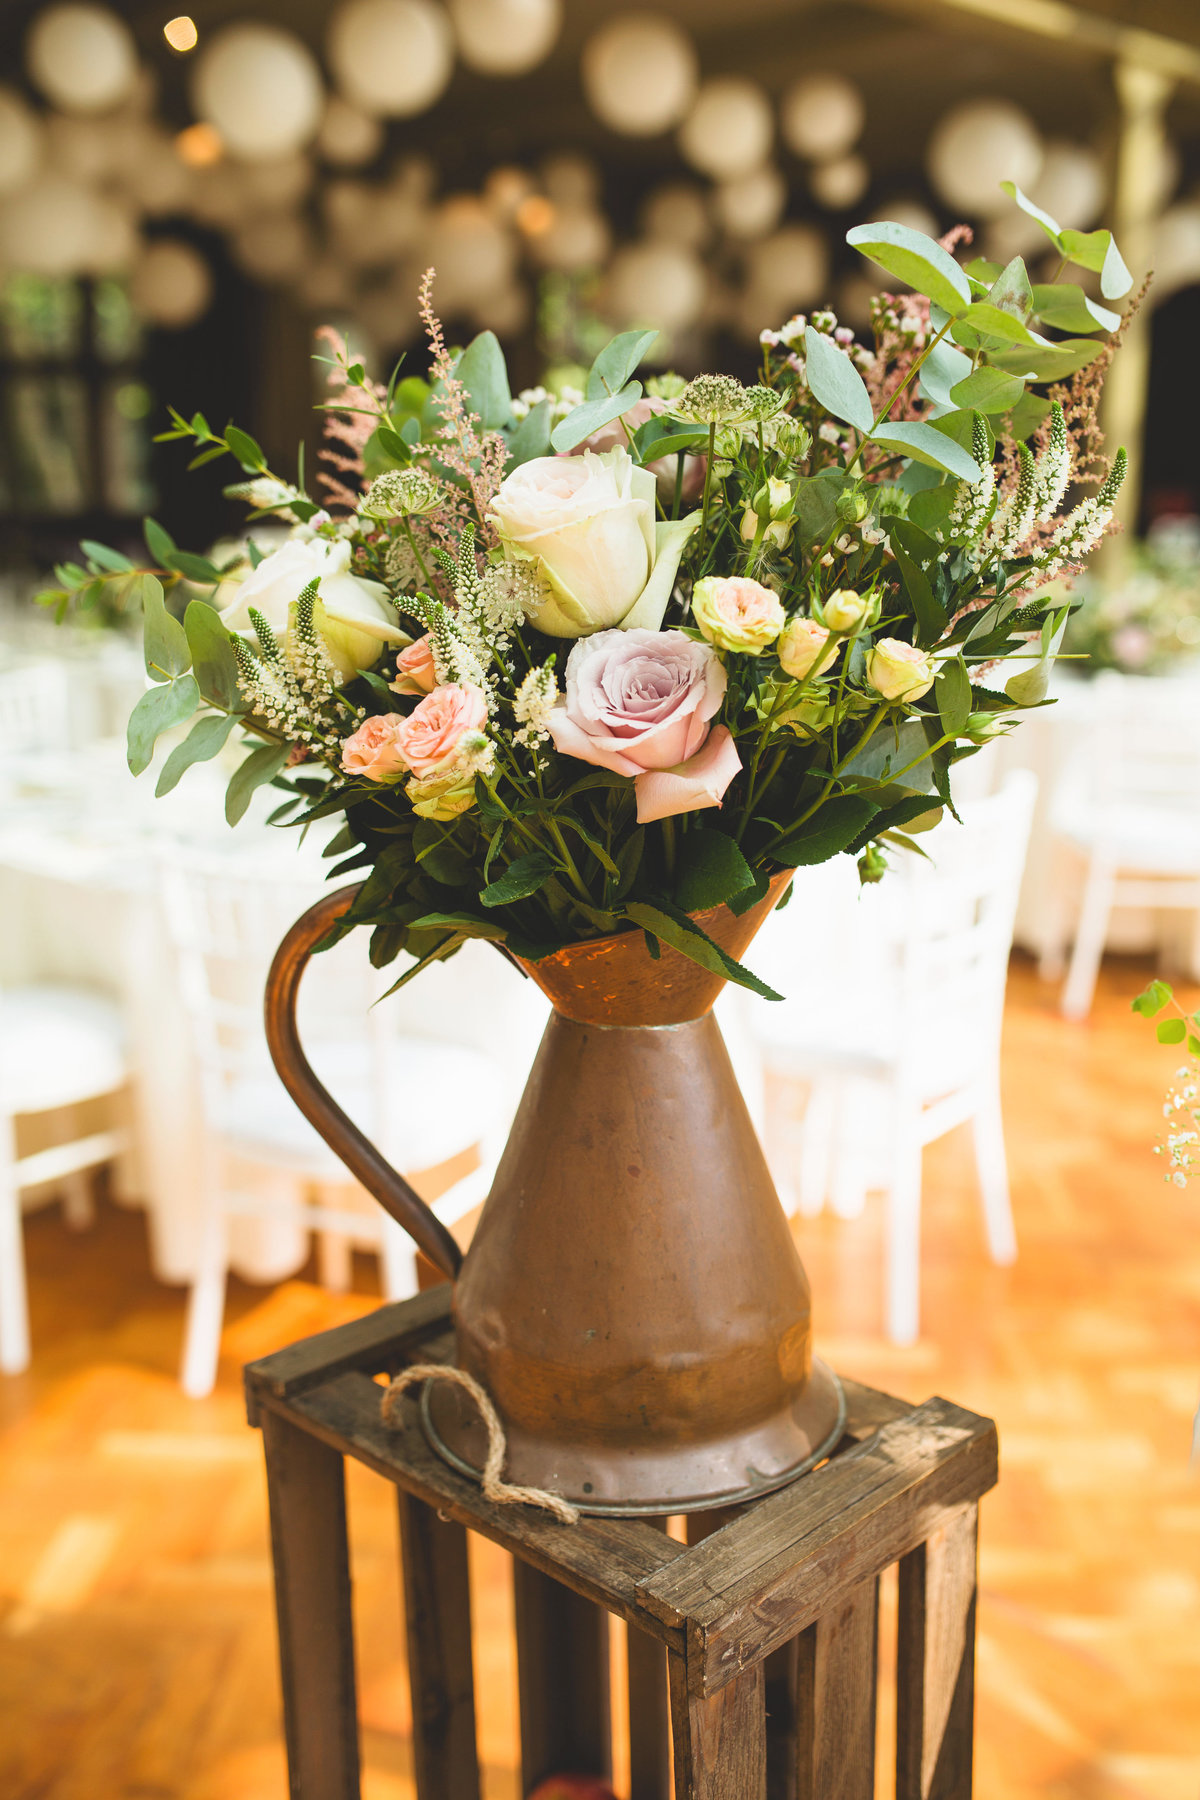 flowers at a wedding in a copper watering can